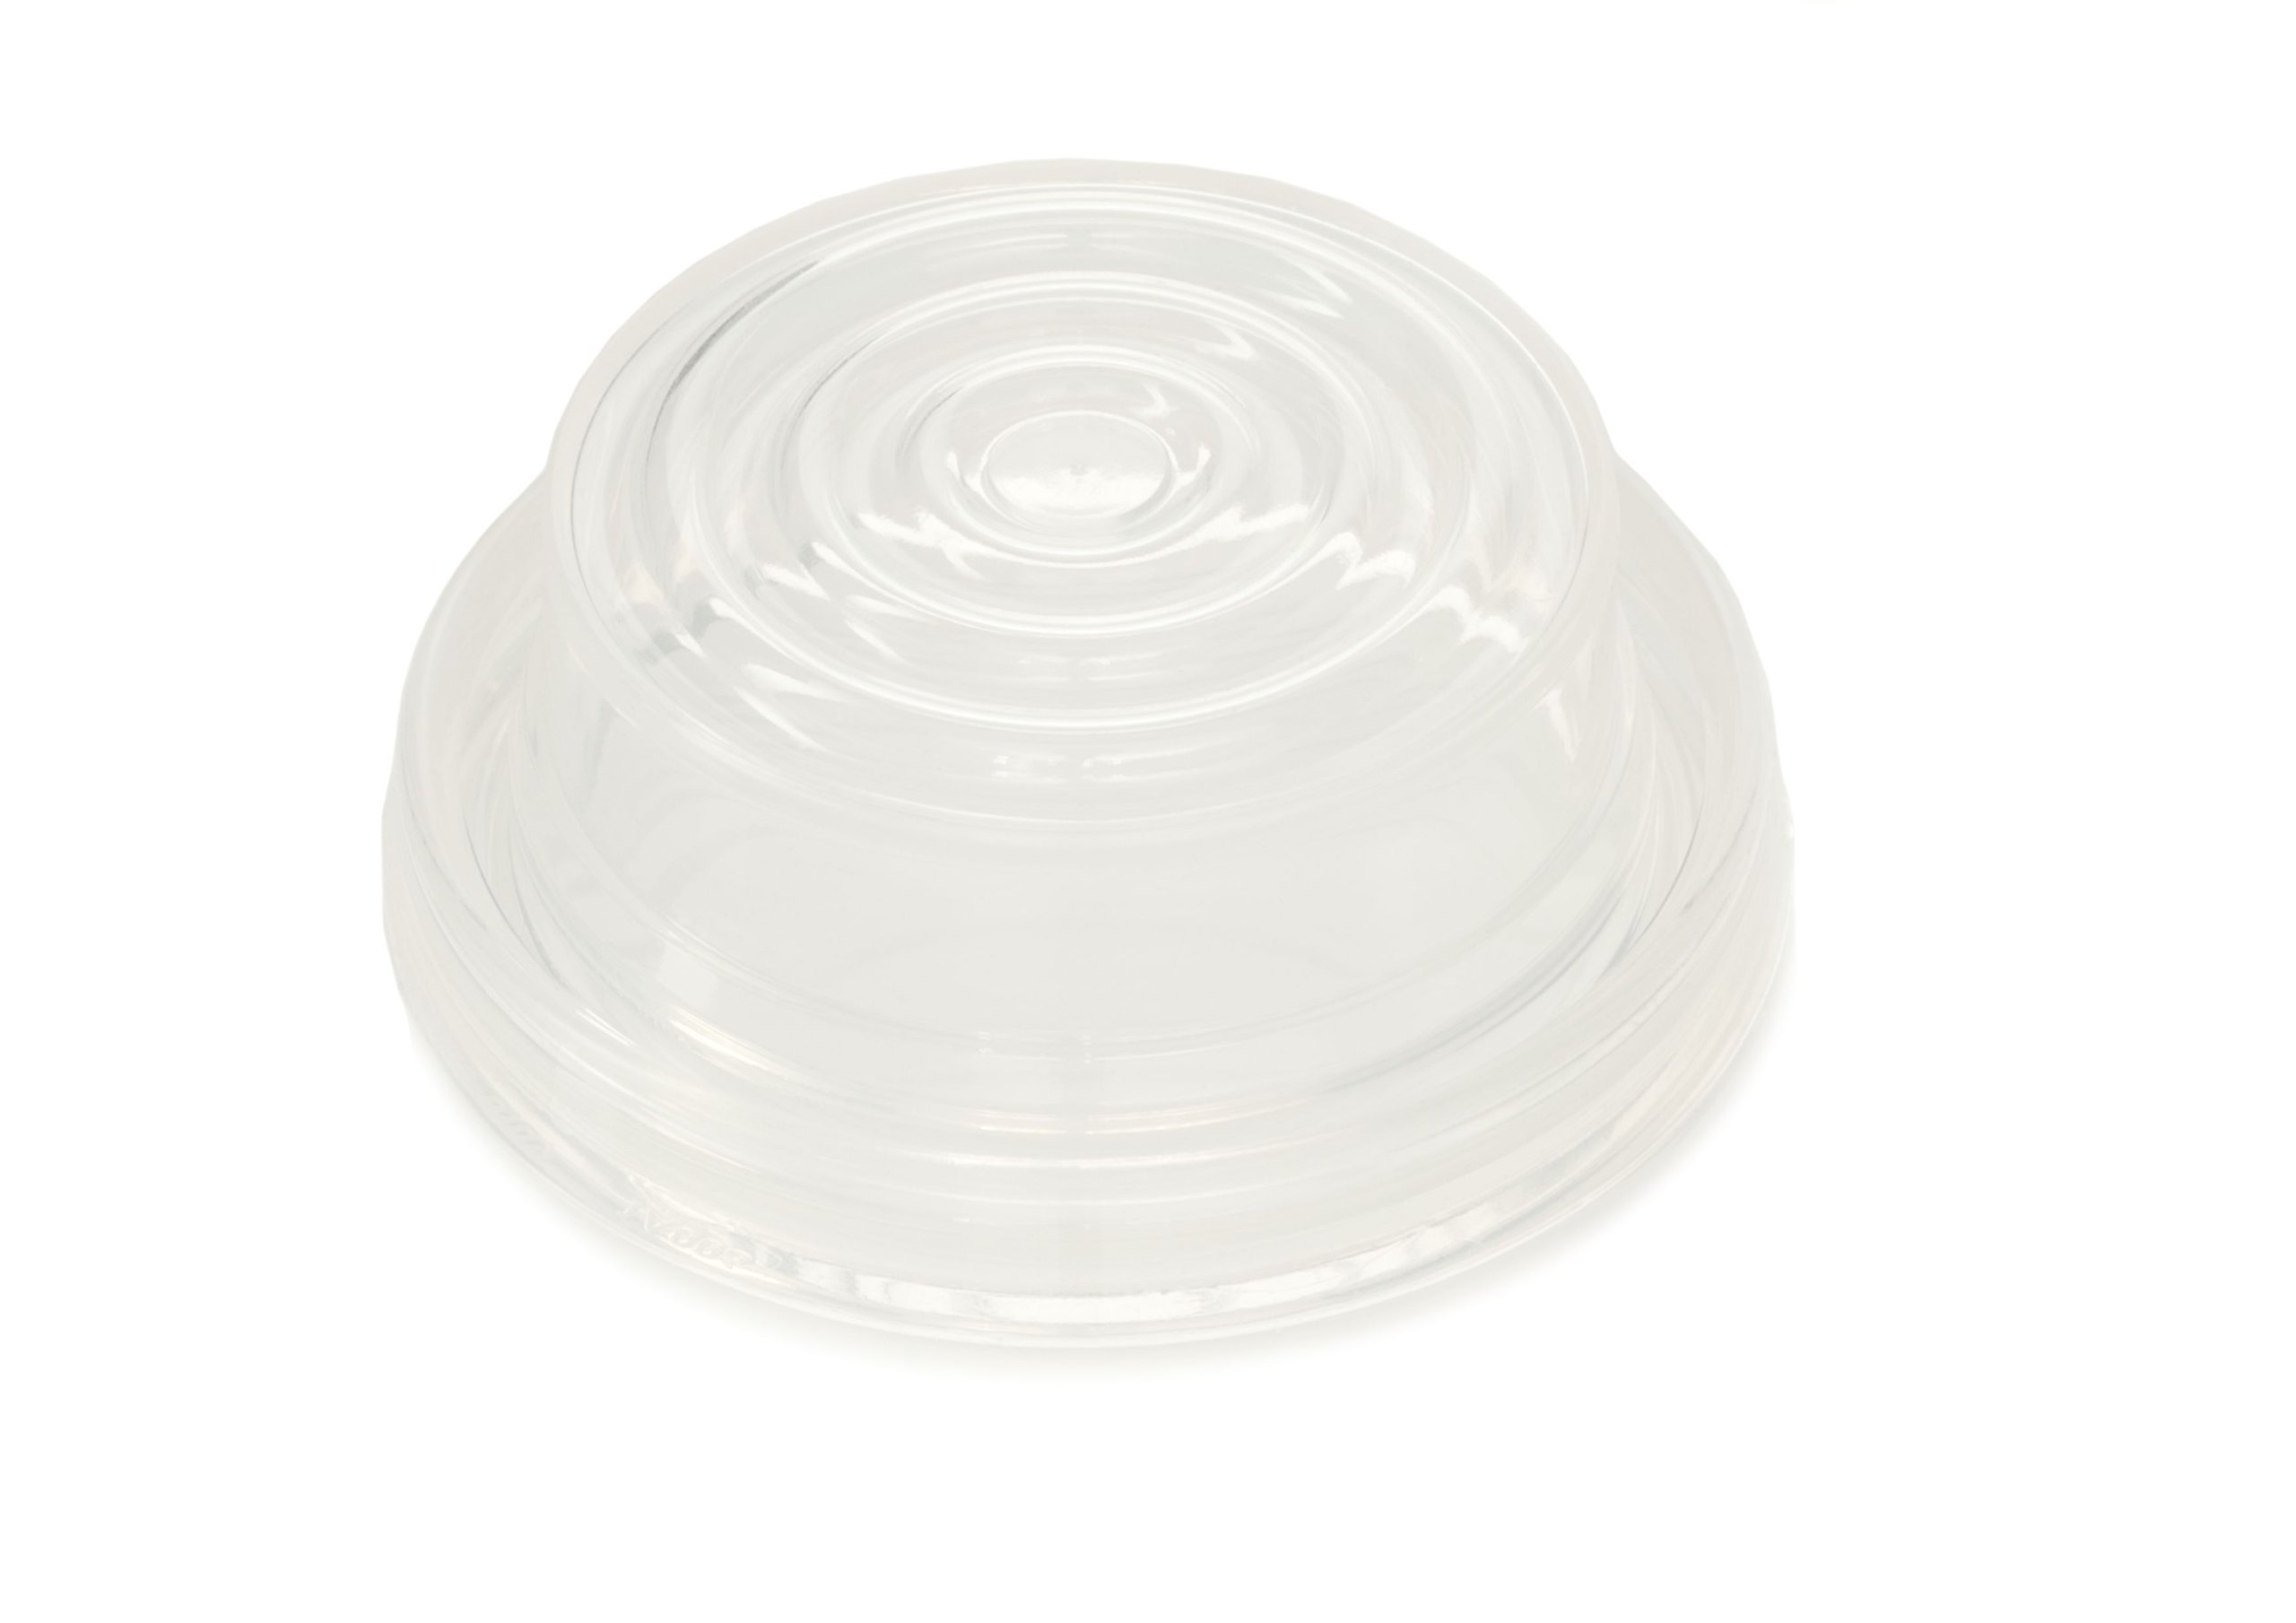 Philips AVENT Comfort Breast Pump Diaphragm for Double and Single Electric Pumps